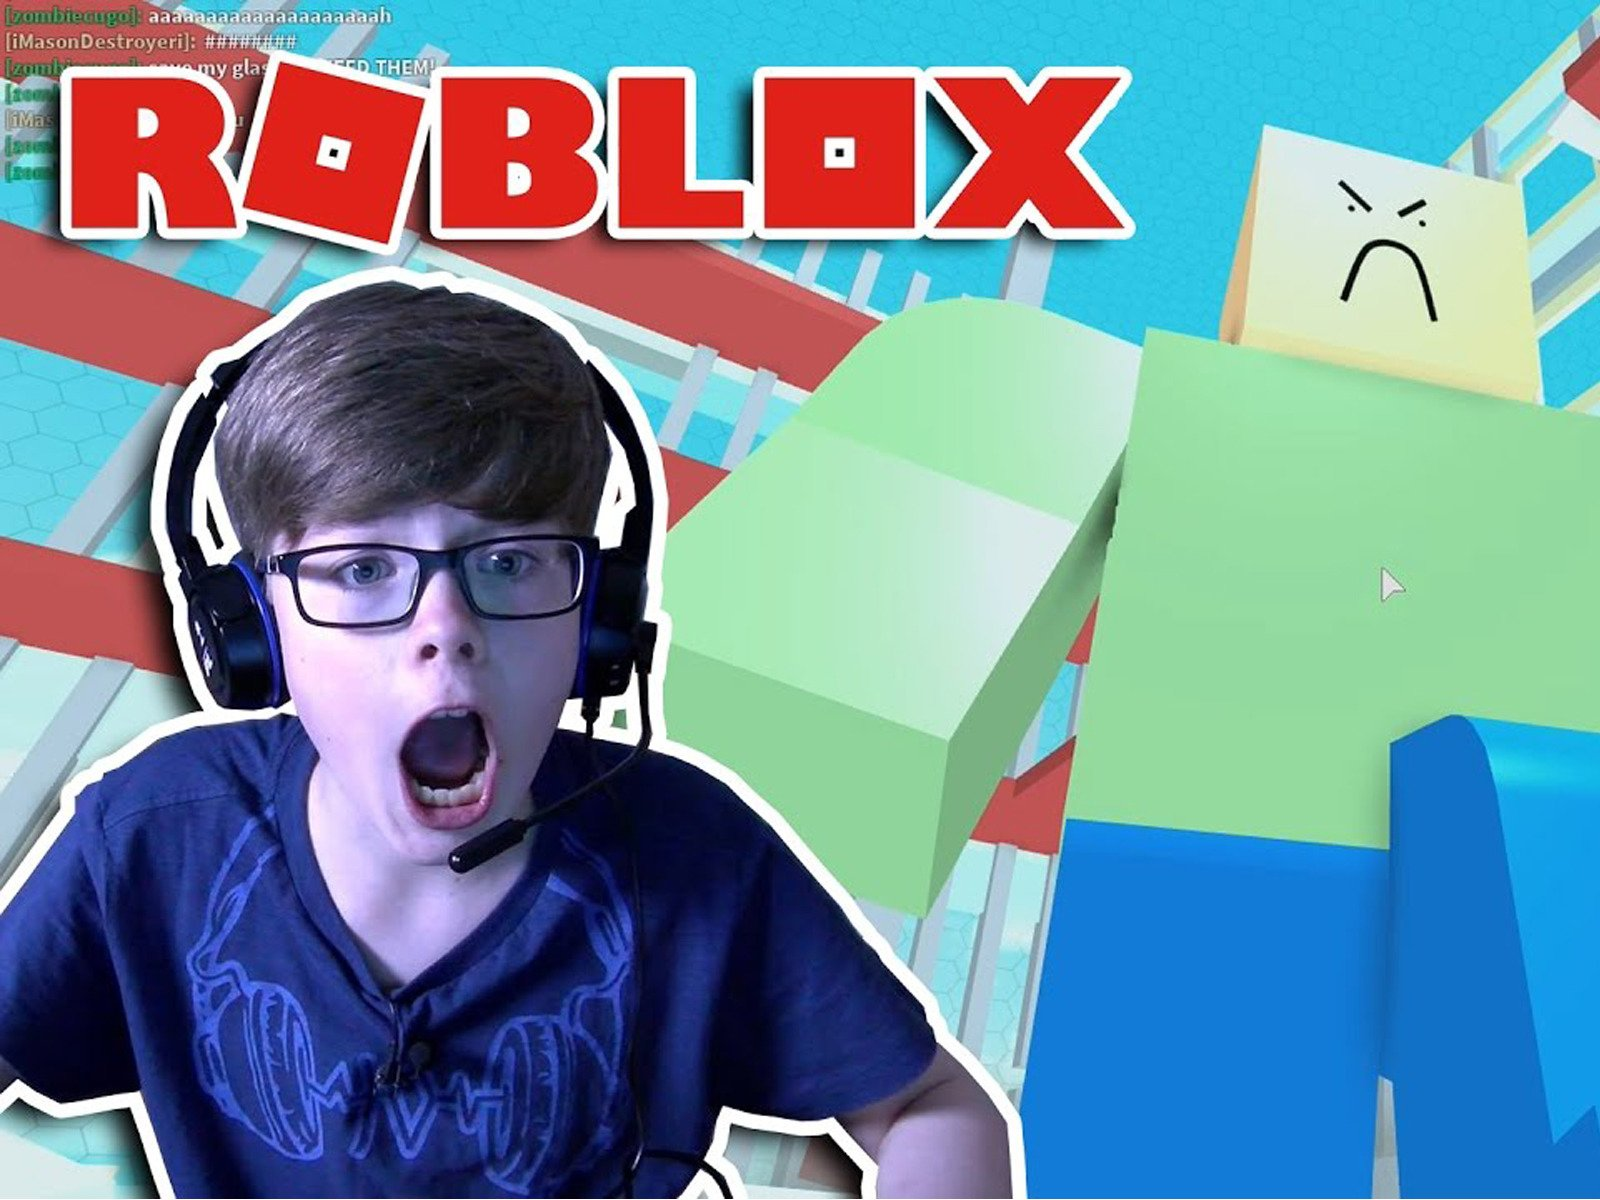 Ethan Gamer Roblox Name Watch Ethangamer Through The Years Roblox Funny Moments Prime Video